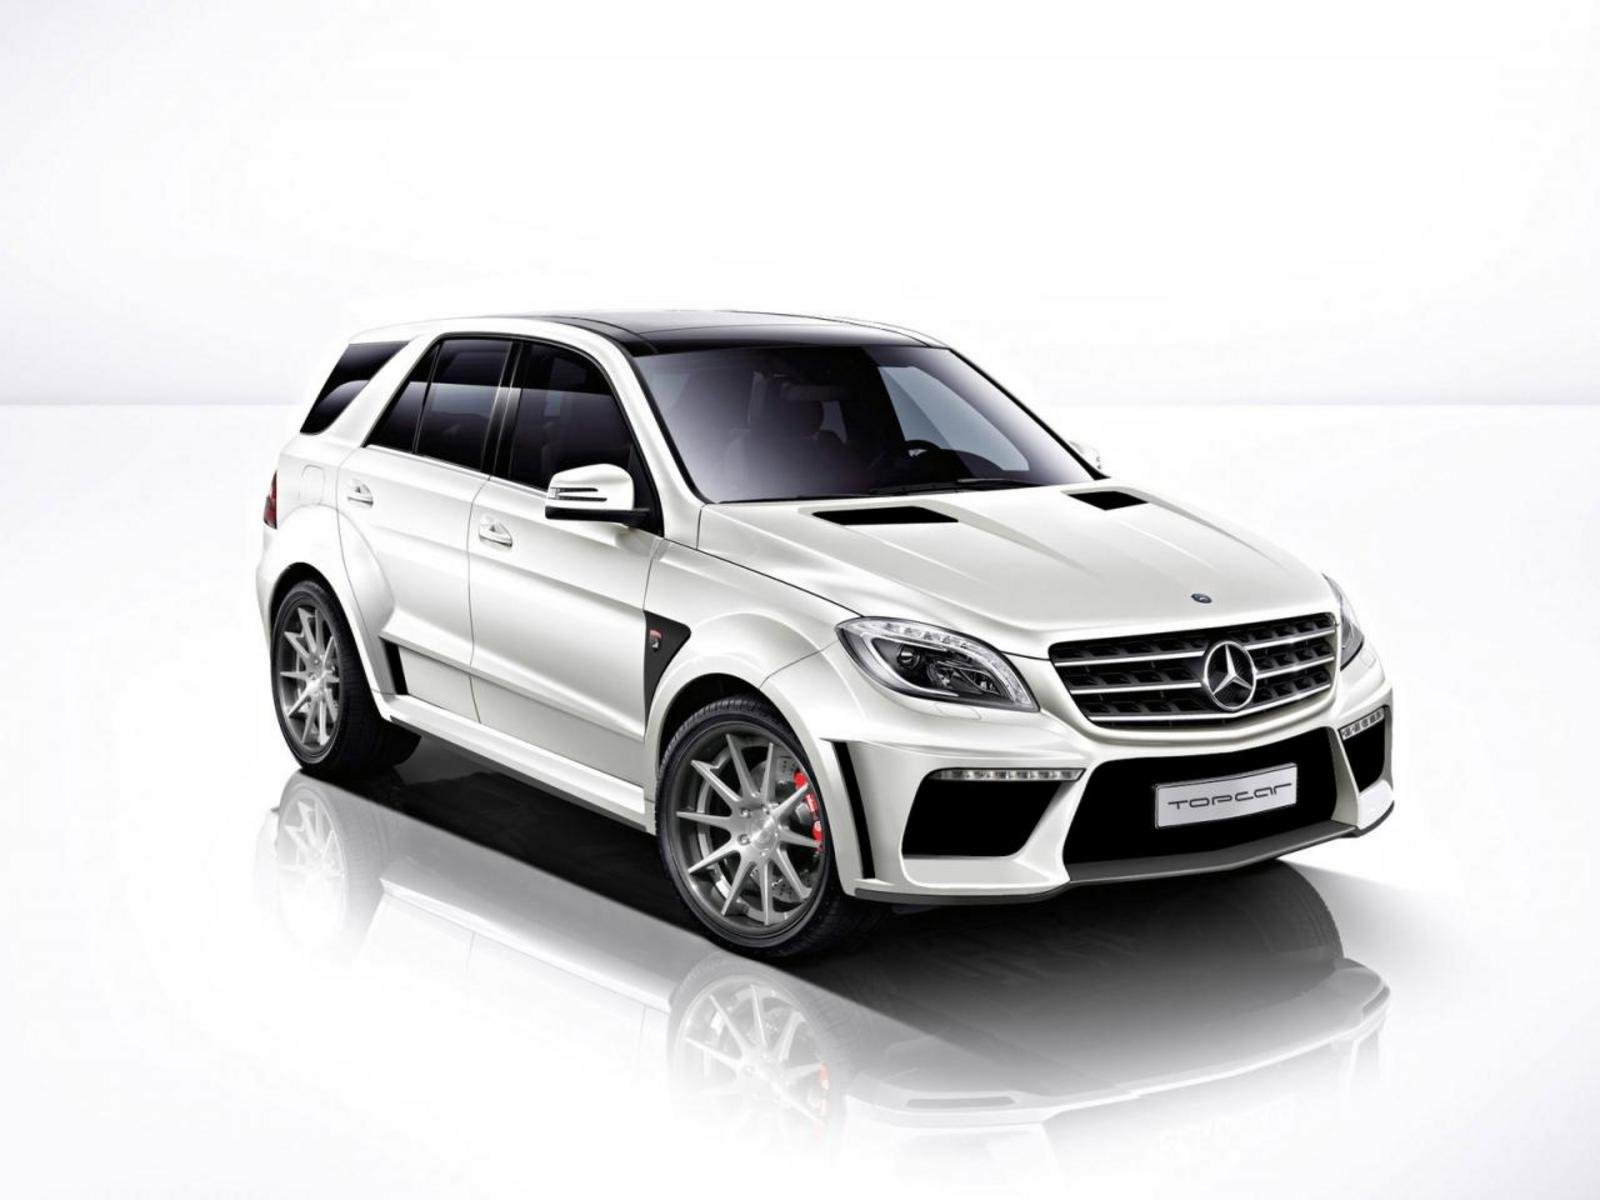 2012 mercedes ml63 amg by topcar review top speed. Black Bedroom Furniture Sets. Home Design Ideas